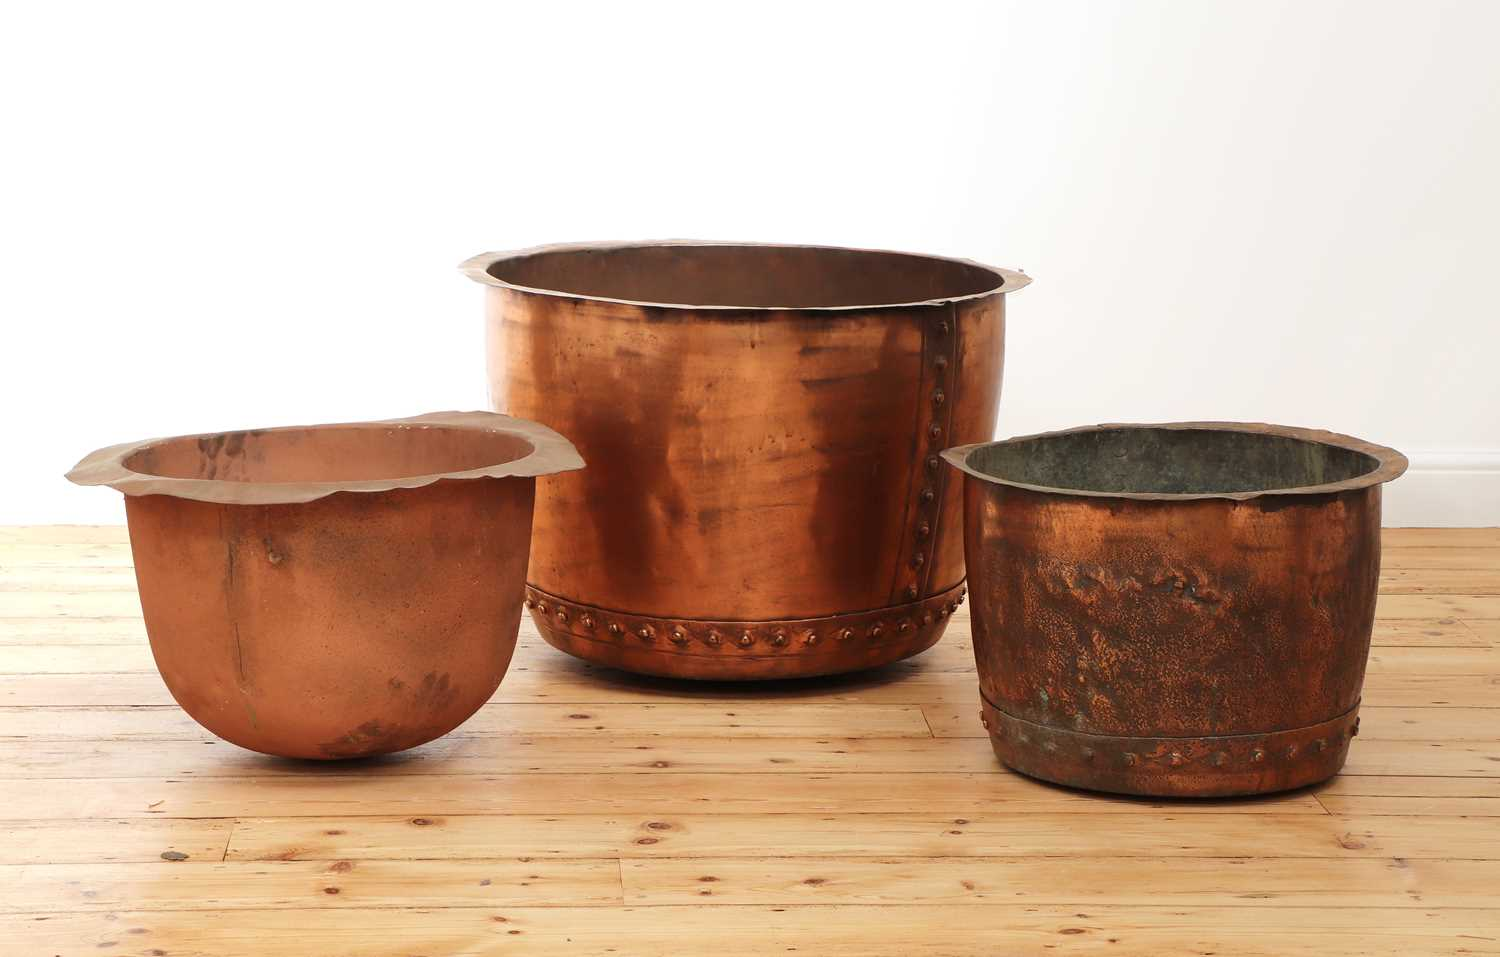 A large riveted copper copper, - Image 2 of 2